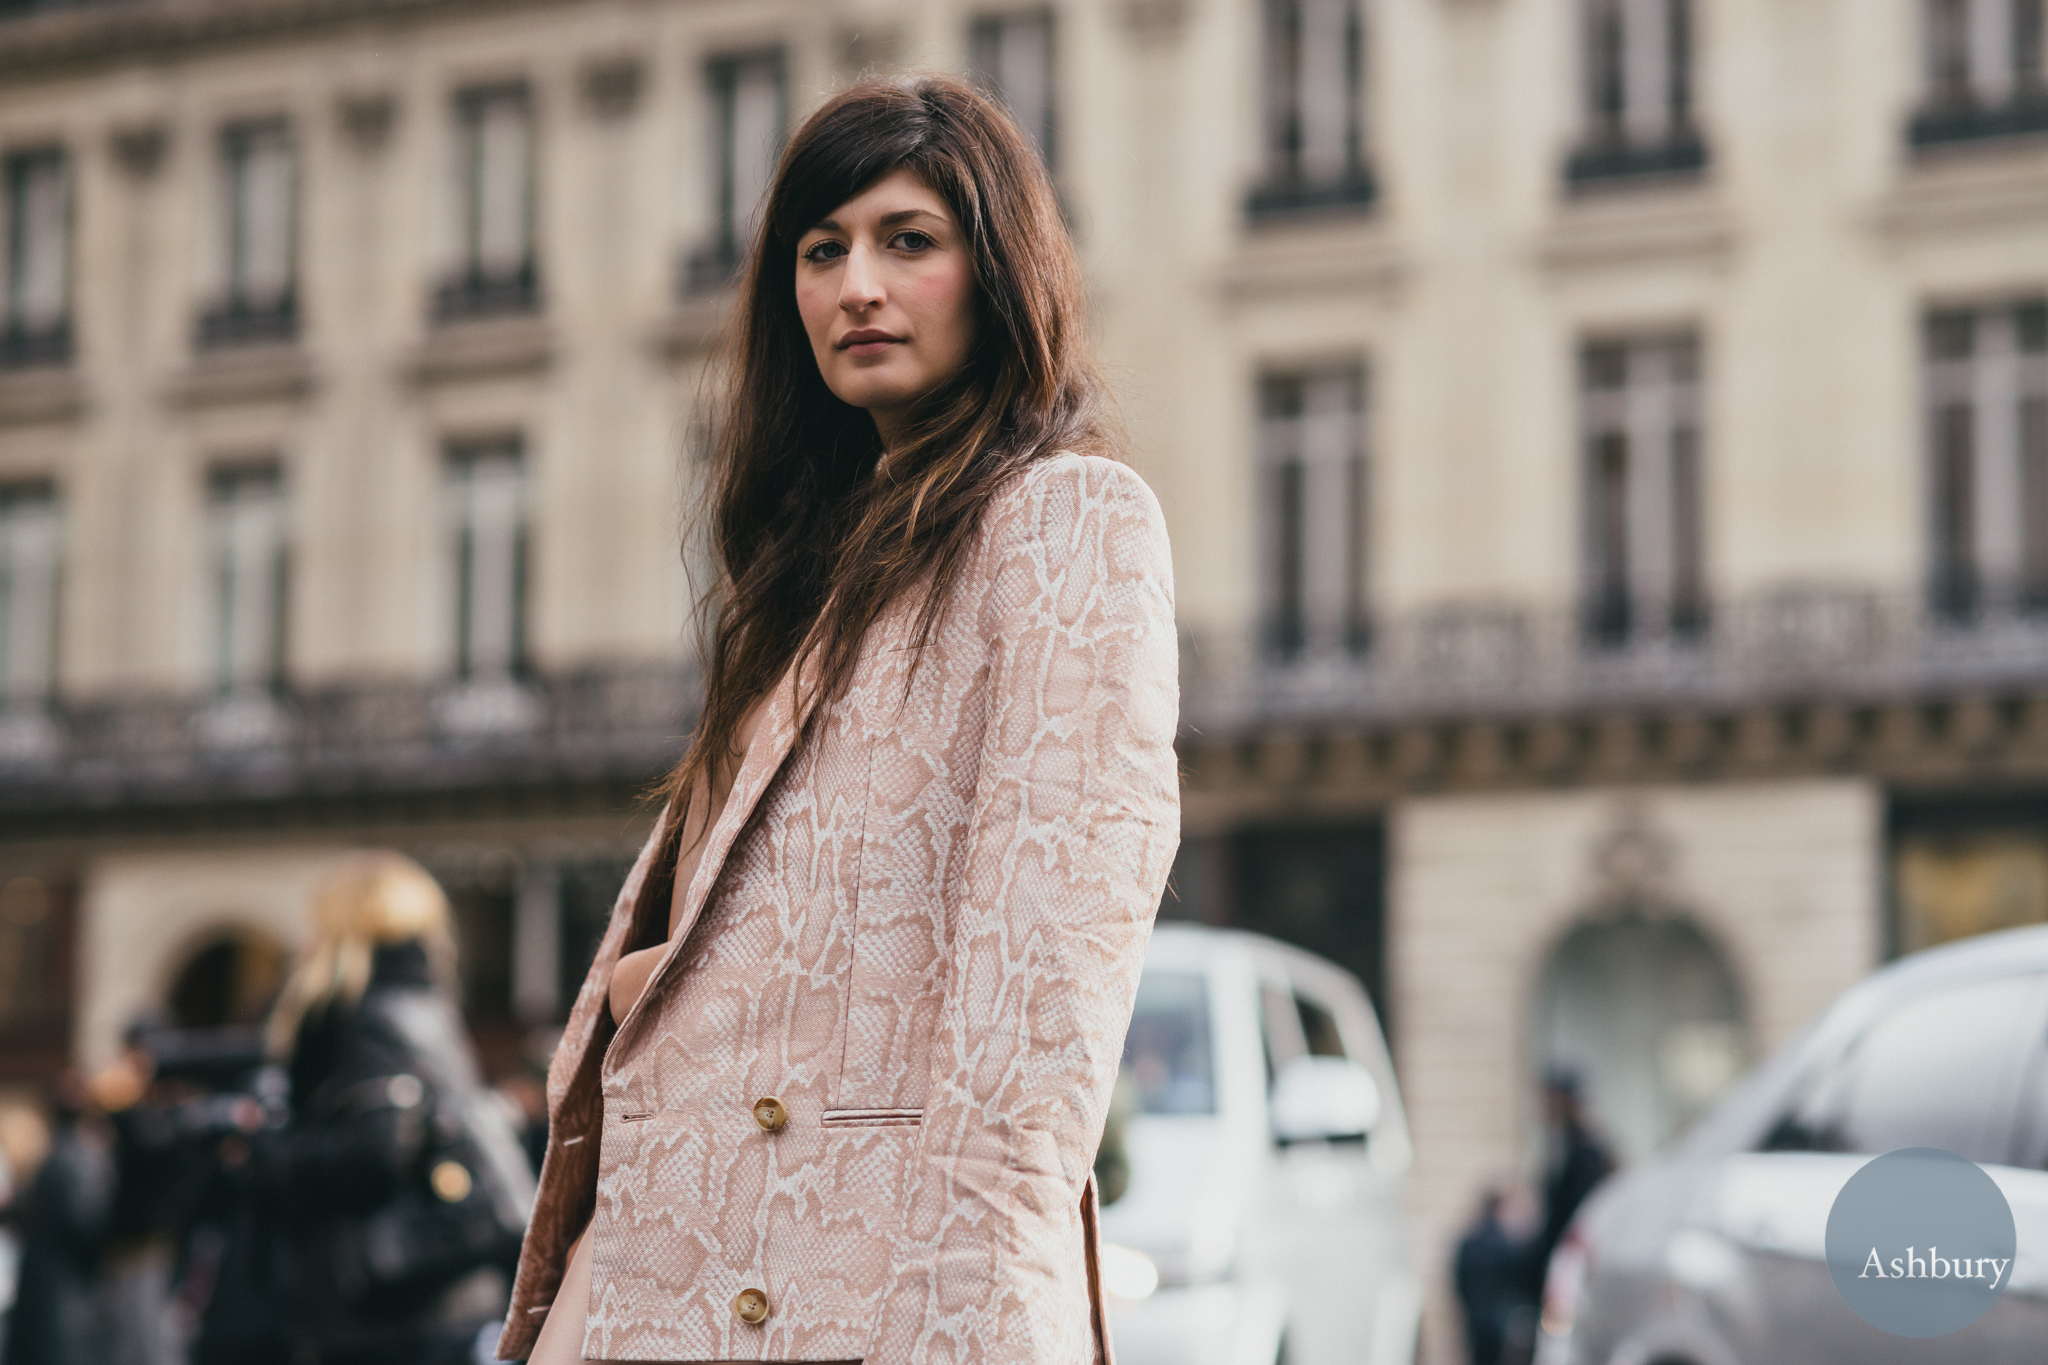 valentina siragusa - paris street fashion